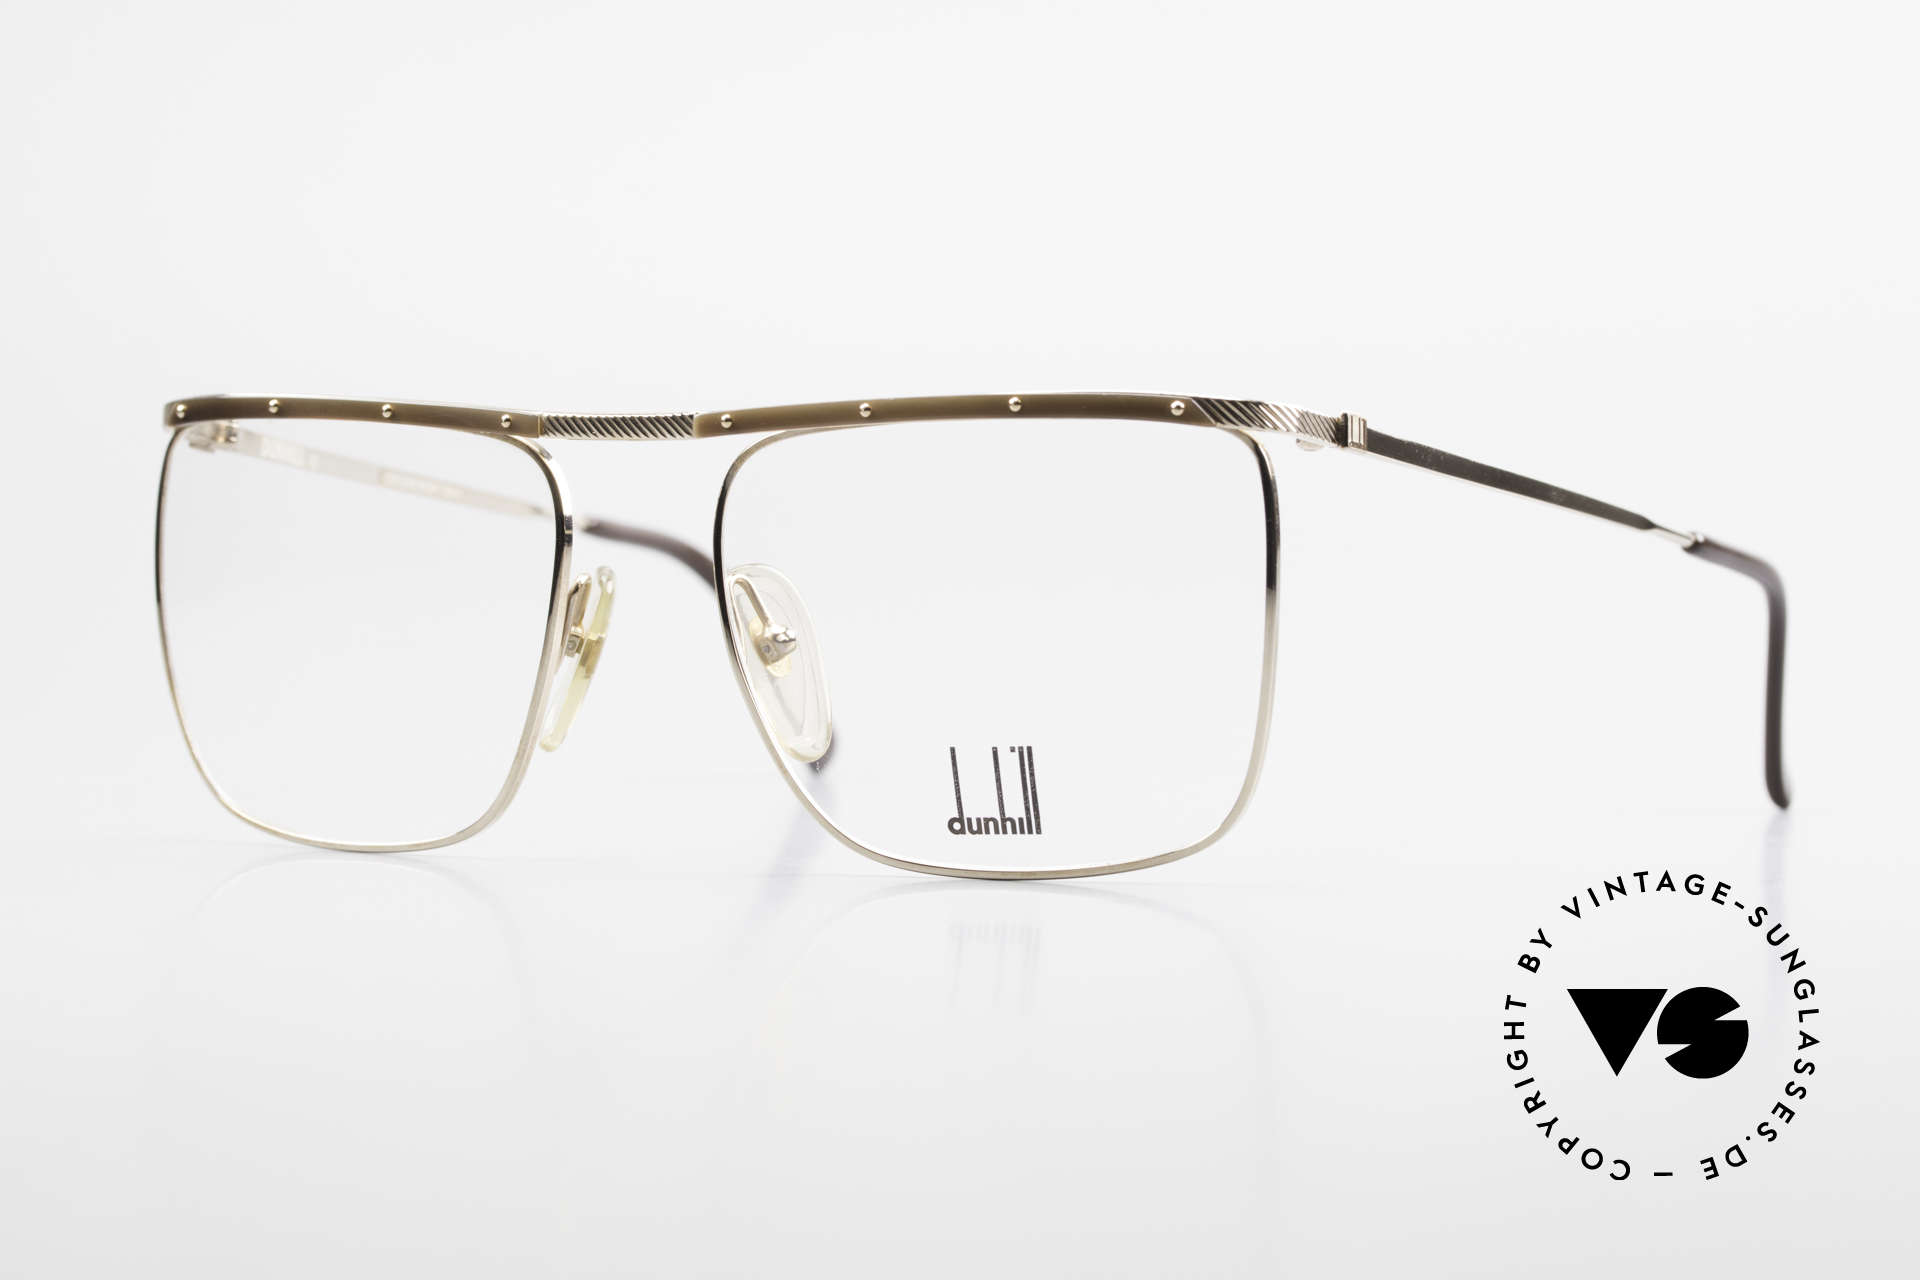 Dunhill 6056 Genuine Horn Trims 80's Frame, Alfred Dunhill luxury eyeglass-frame from 1988, Made for Men